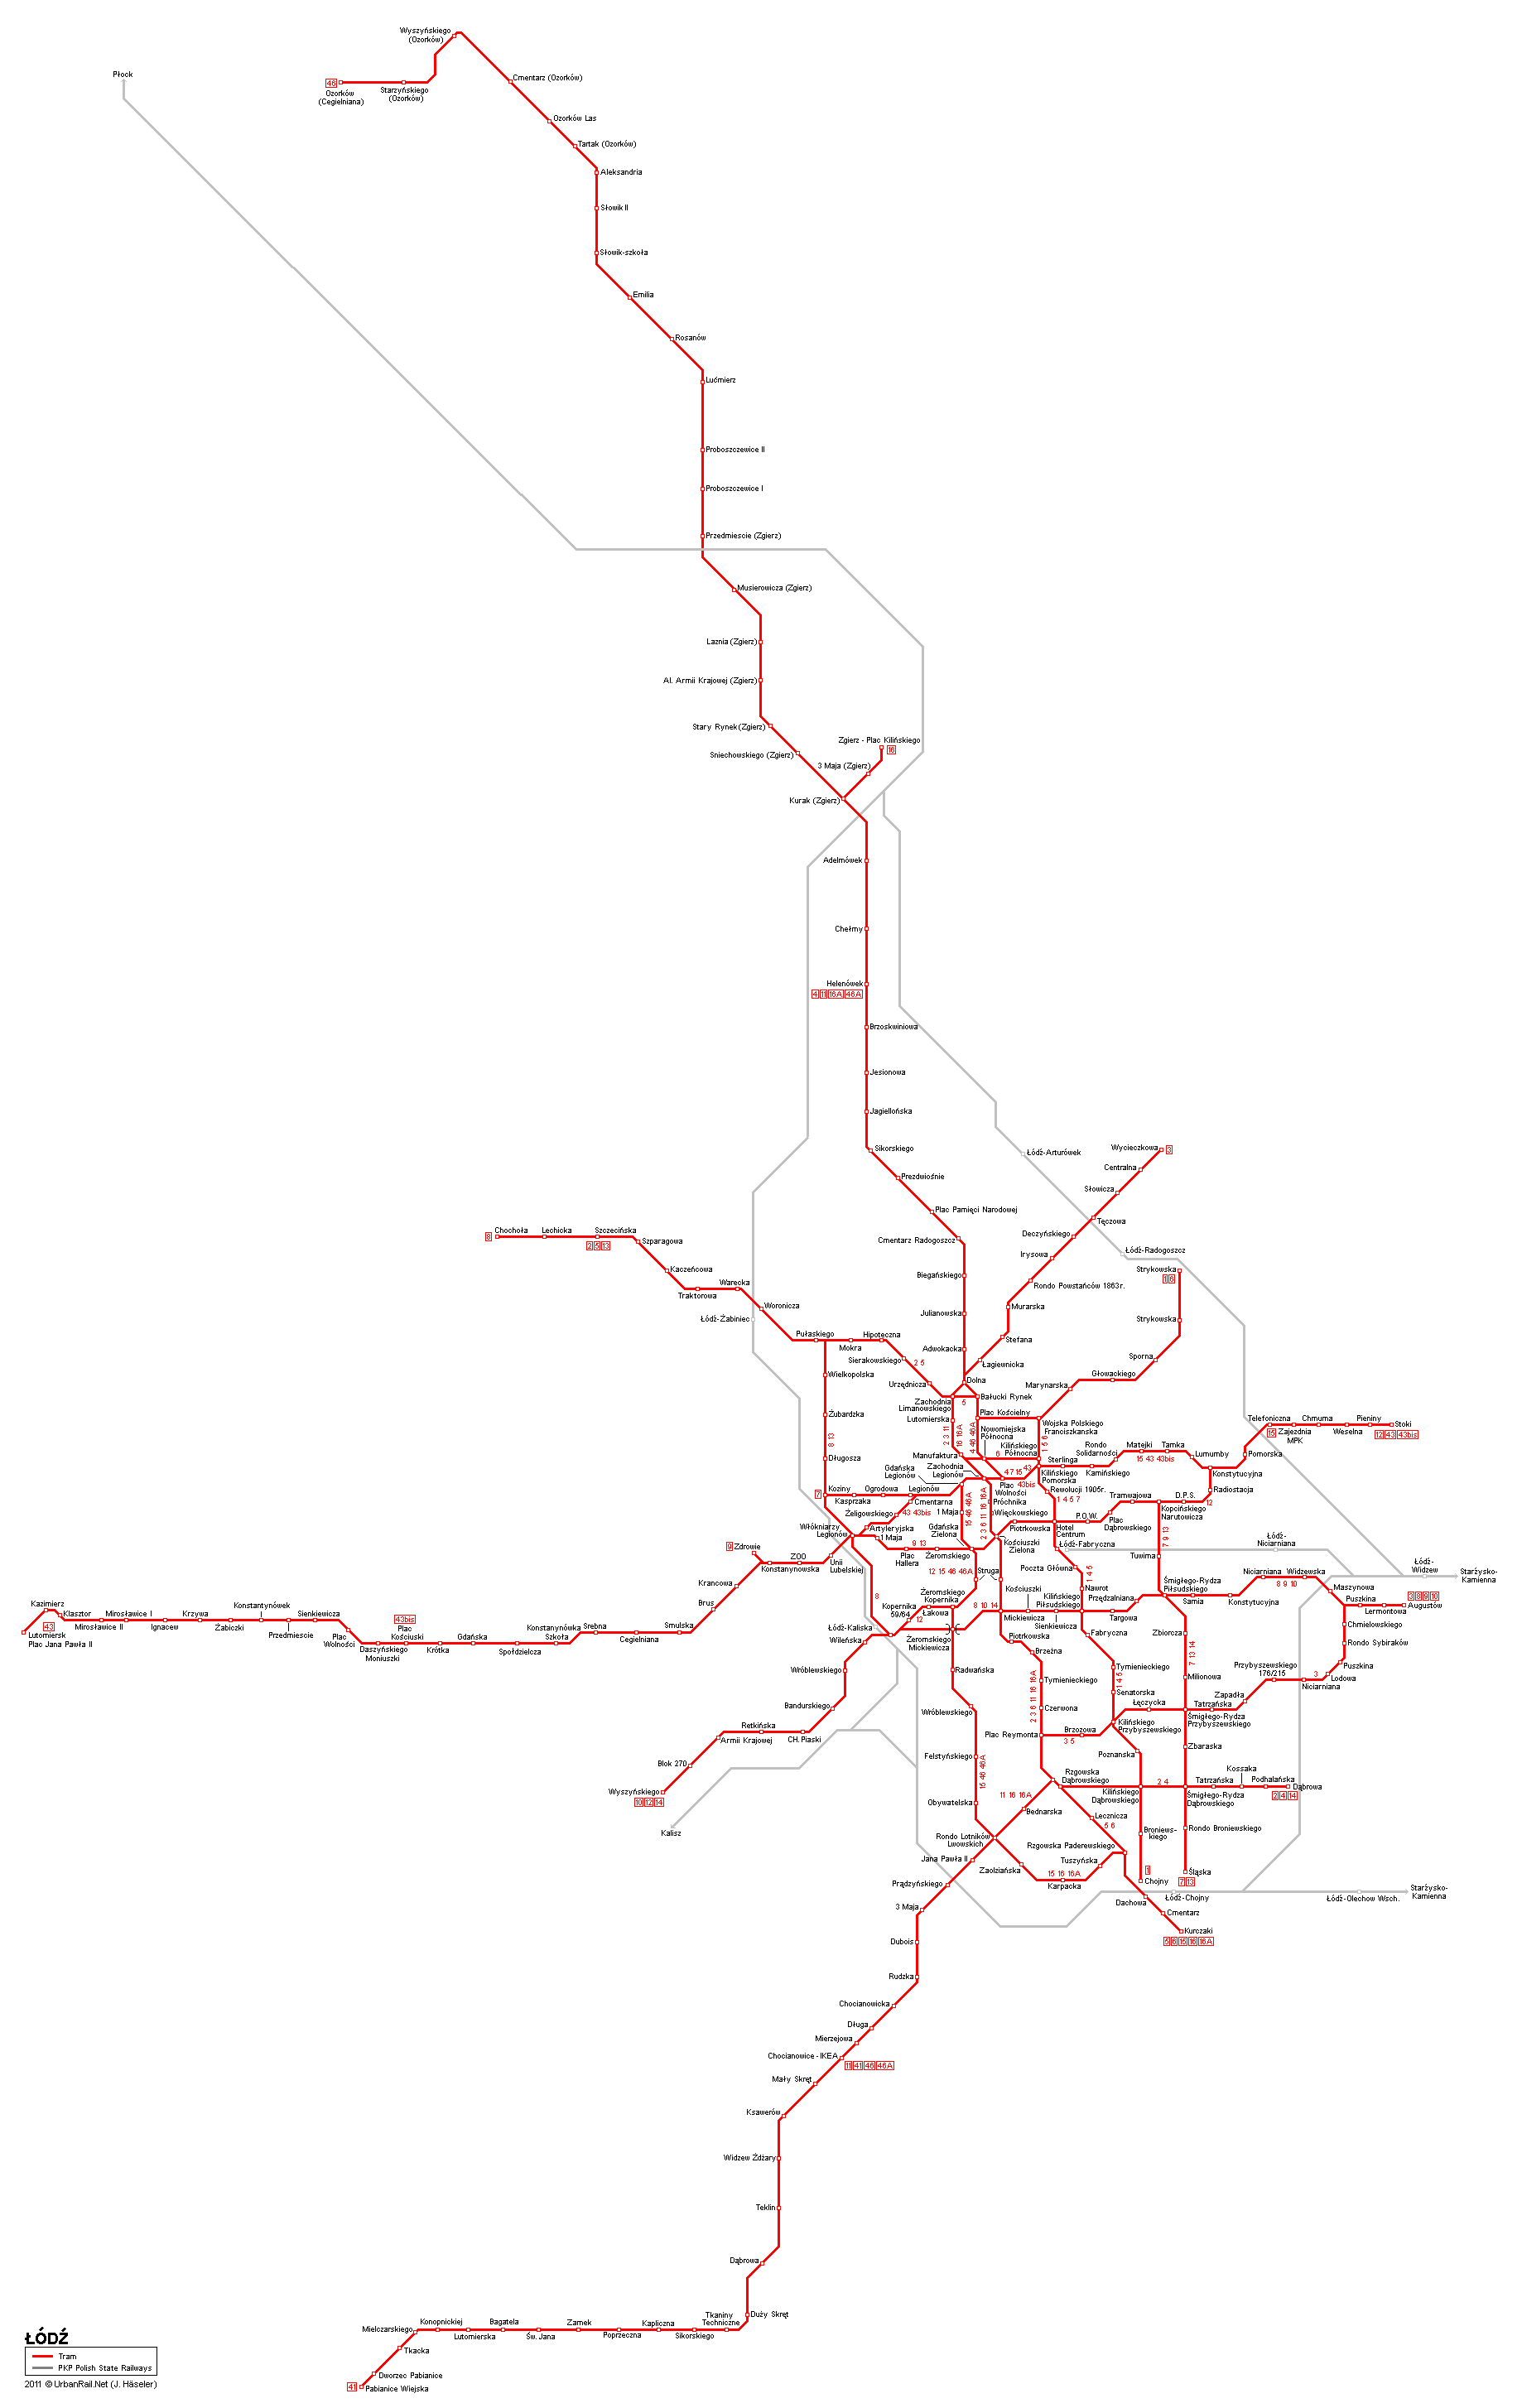 Tram map of Lodz